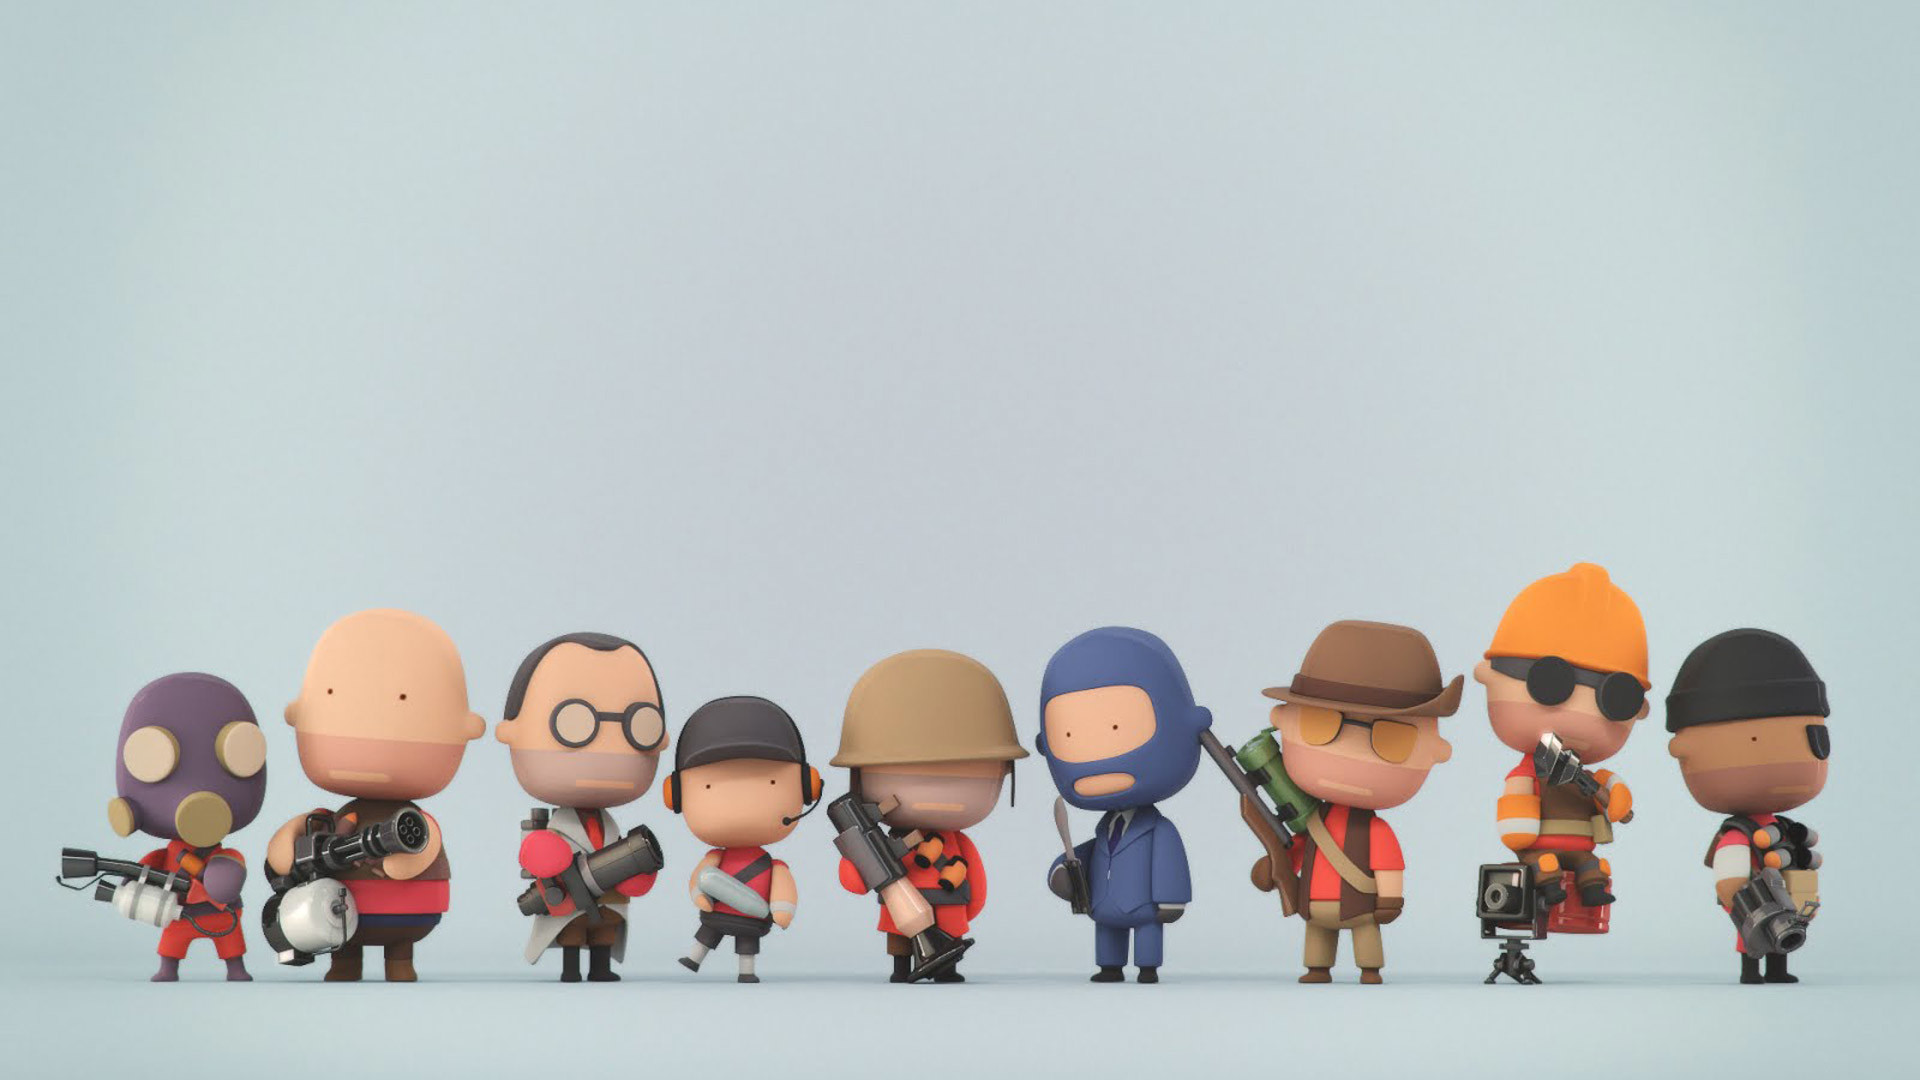 1920x1080 Team Fortress 2 Image